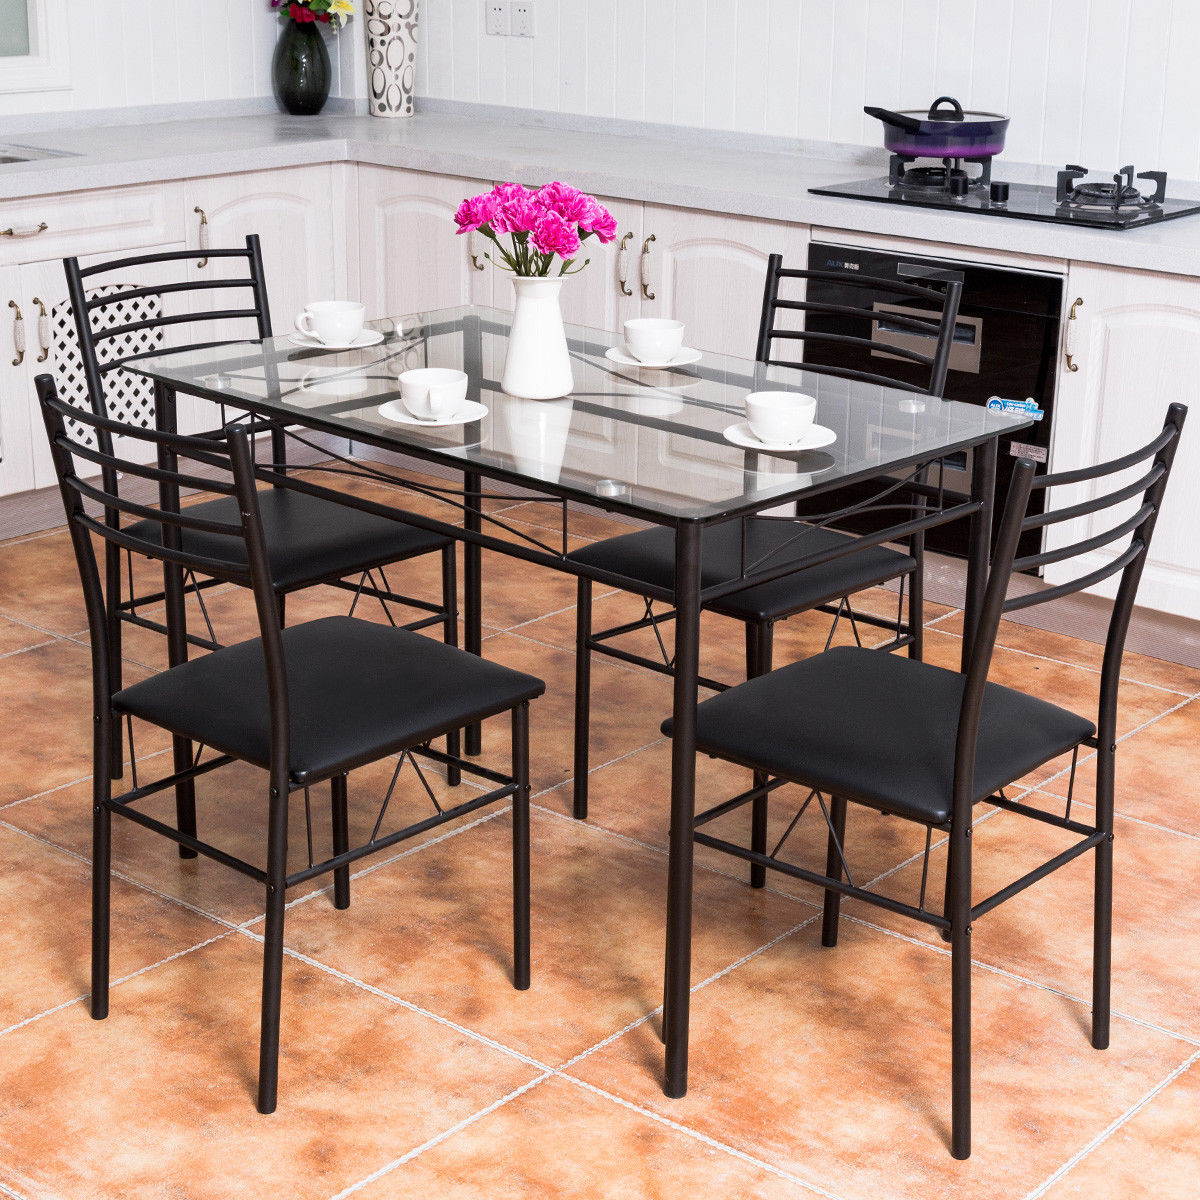 Modern 5pc Dining Table Set Kitchen Dinette Chairs: Giantex 5PC Dining Set Modern Dining Room Tempered Glass